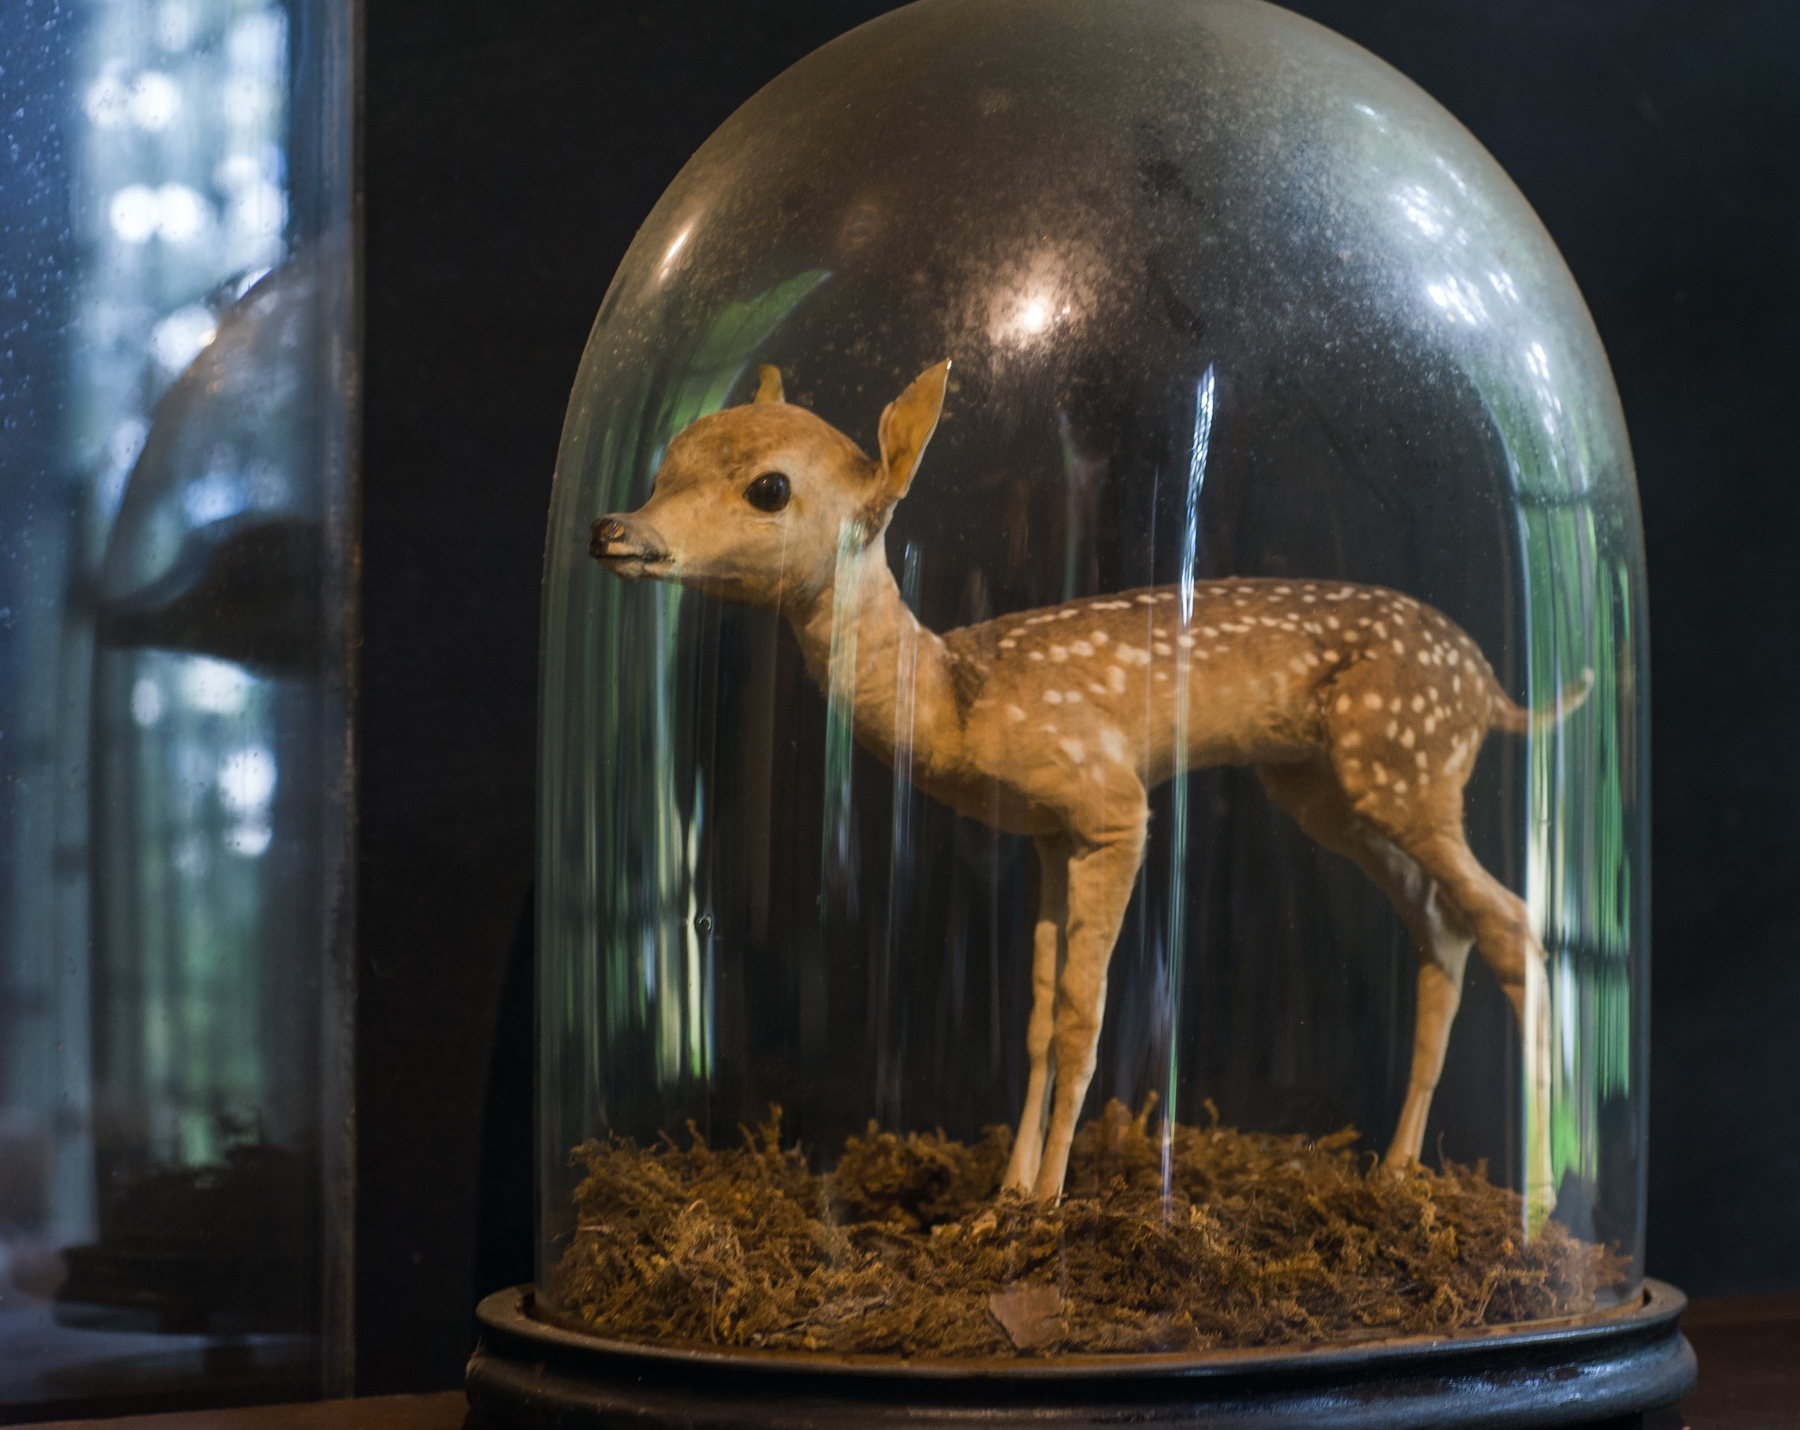 Fawn in bell jar at the Skinner Museum, Mount Holyoke.